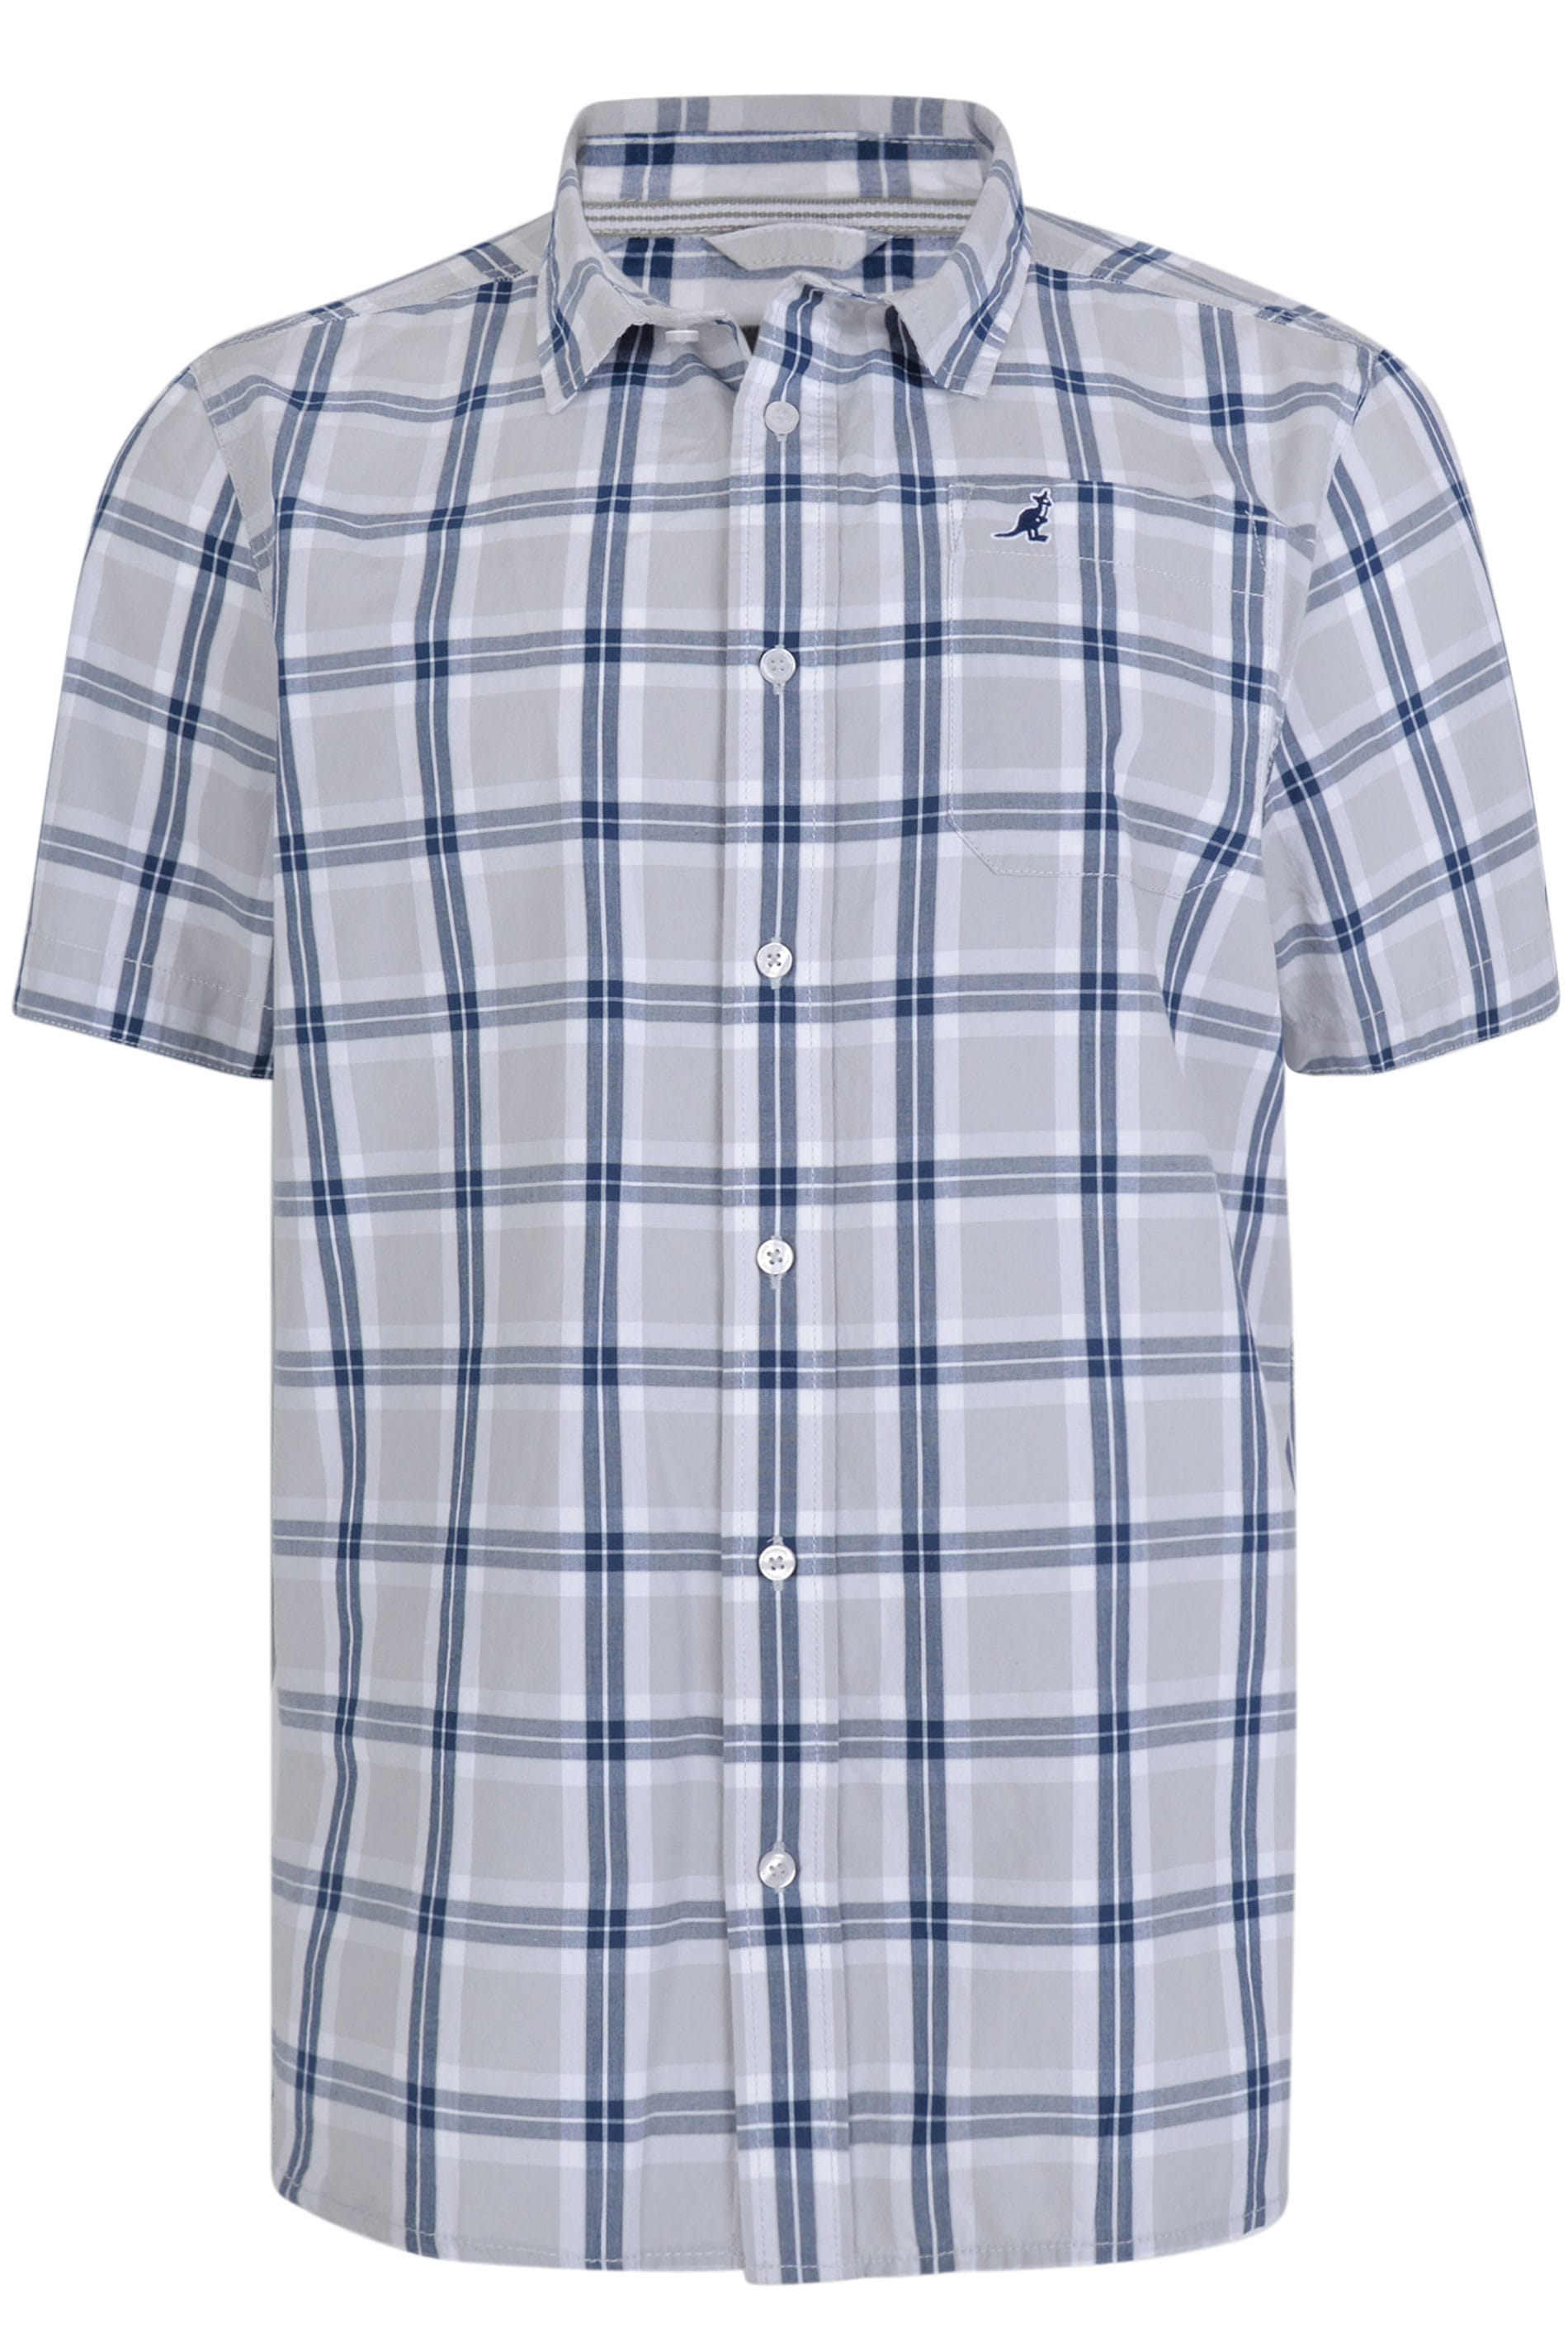 KANGOL Grey & Navy Check Short Sleeve Shirt